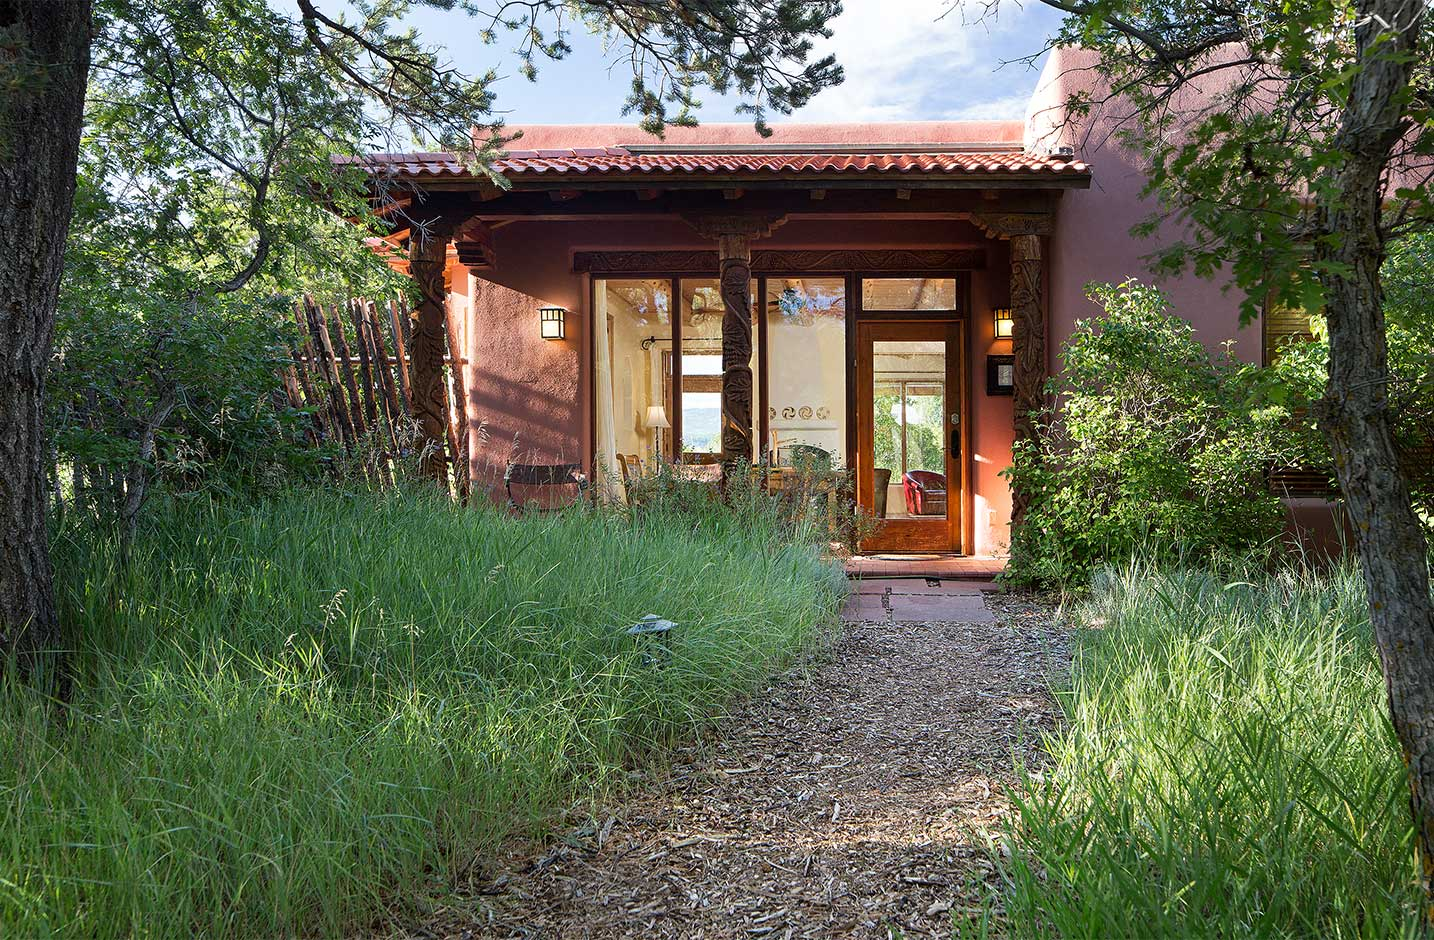 Cedar Casita exterior and entryway with a mulch path